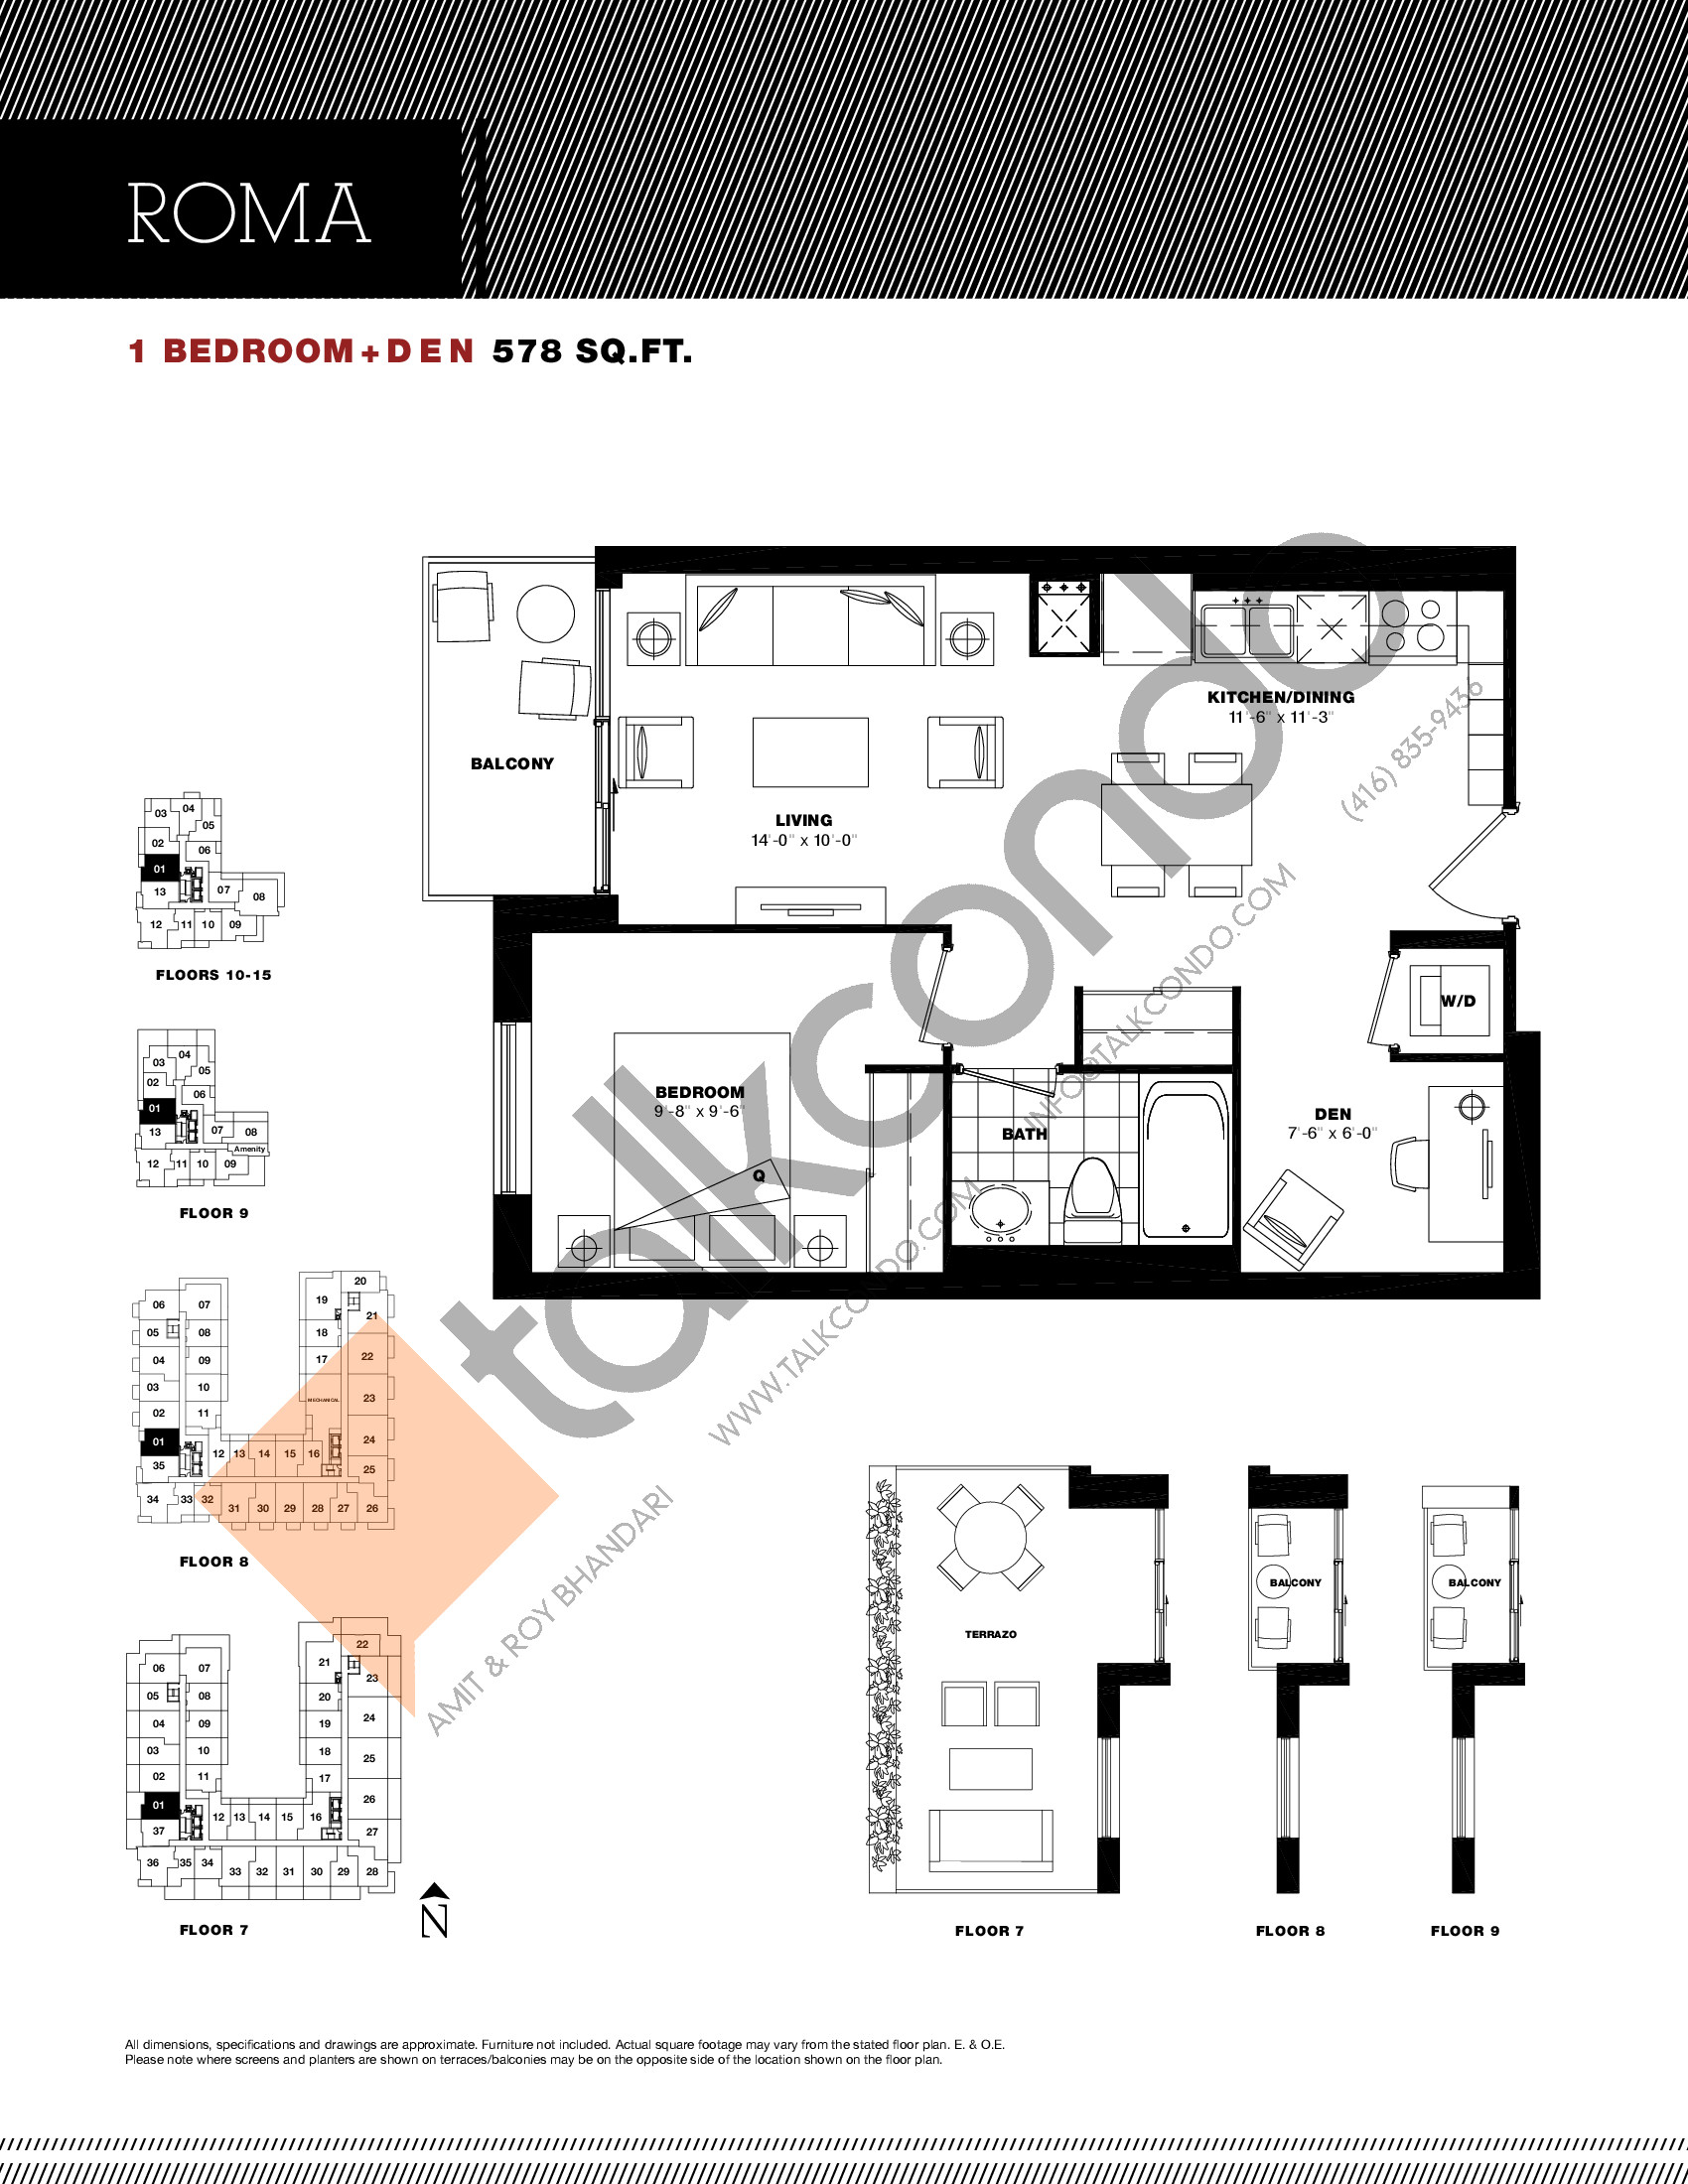 Roma Floor Plan at Residenze Palazzo at Treviso 3 Condos - 578 sq.ft